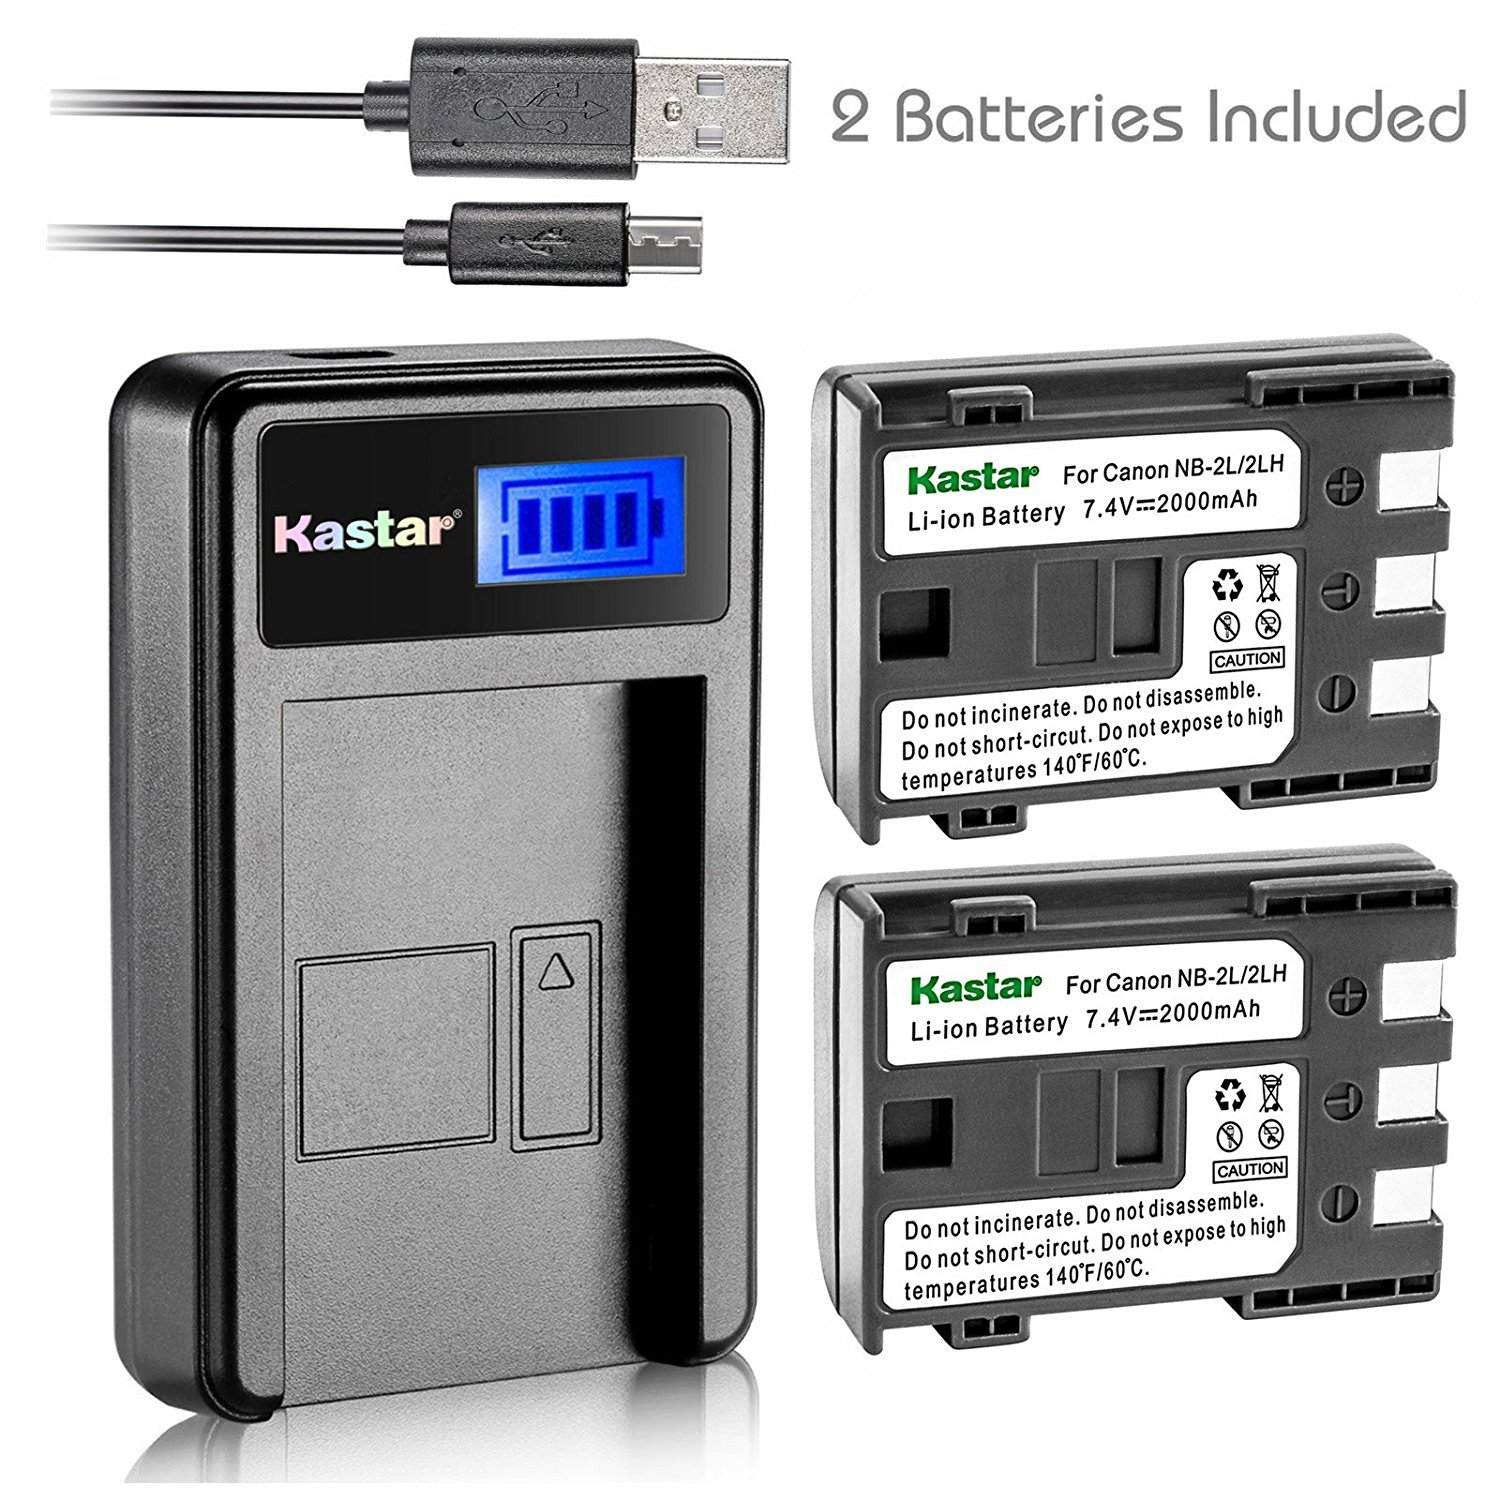 Kastar Battery (X2) & LCD Slim USB Charger for Canon NB-2L NB-2LH NB-2L12 NB-2L14 NB-2L24 BP-2L5 BP-2LH and Canon EOS Digital Rebel XT Xti Cameras